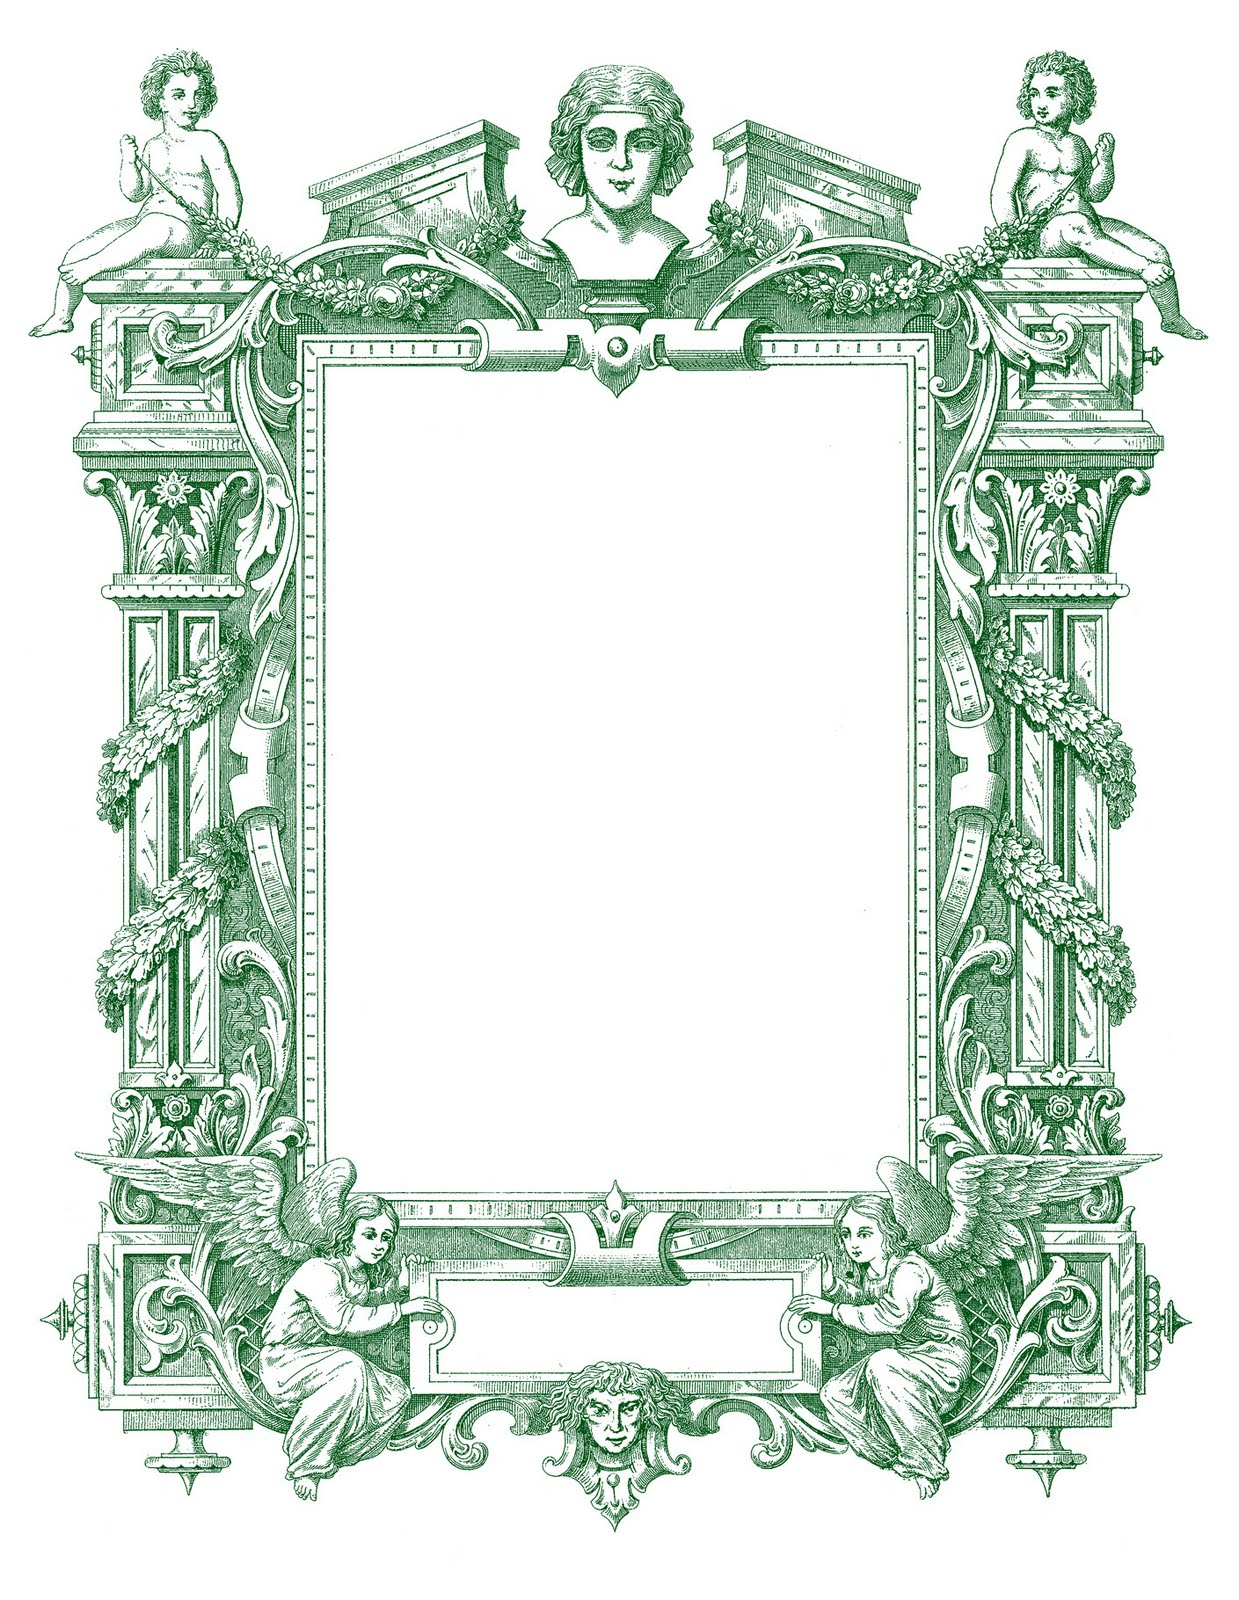 Spectacular Antique French Graphic Frame with Angels - The Graphics ...